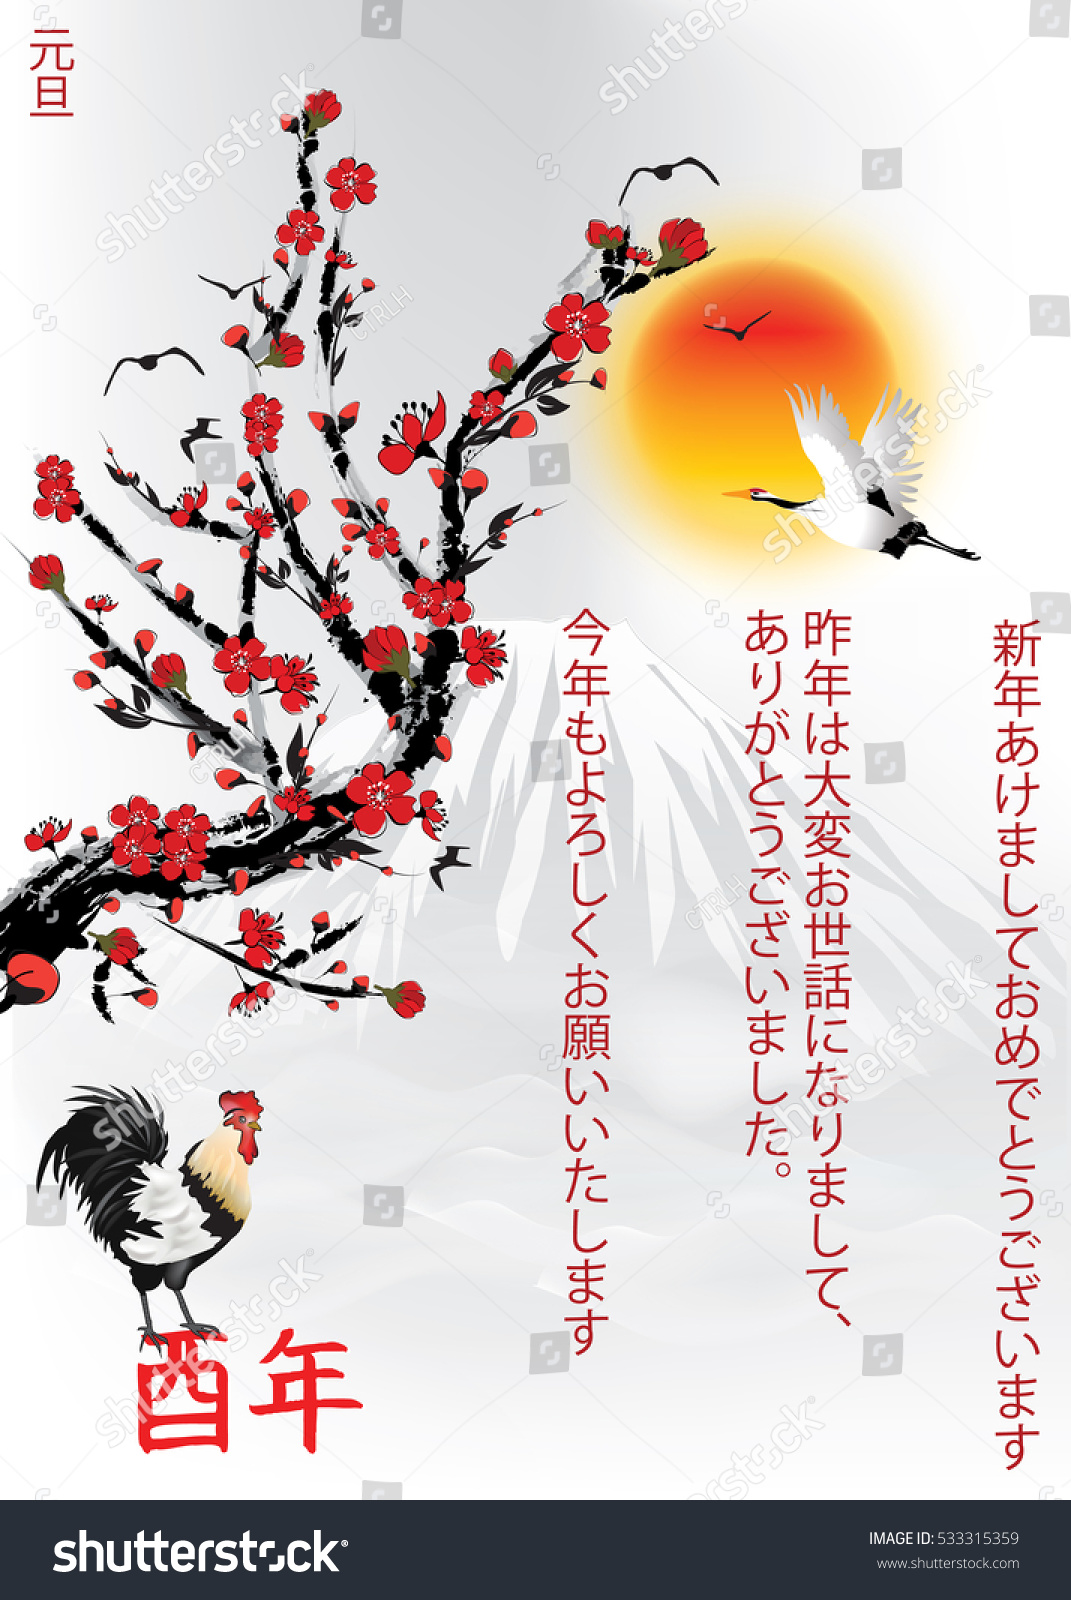 Japanese New Year Rooster Greeting Card Stock Illustration 533315359